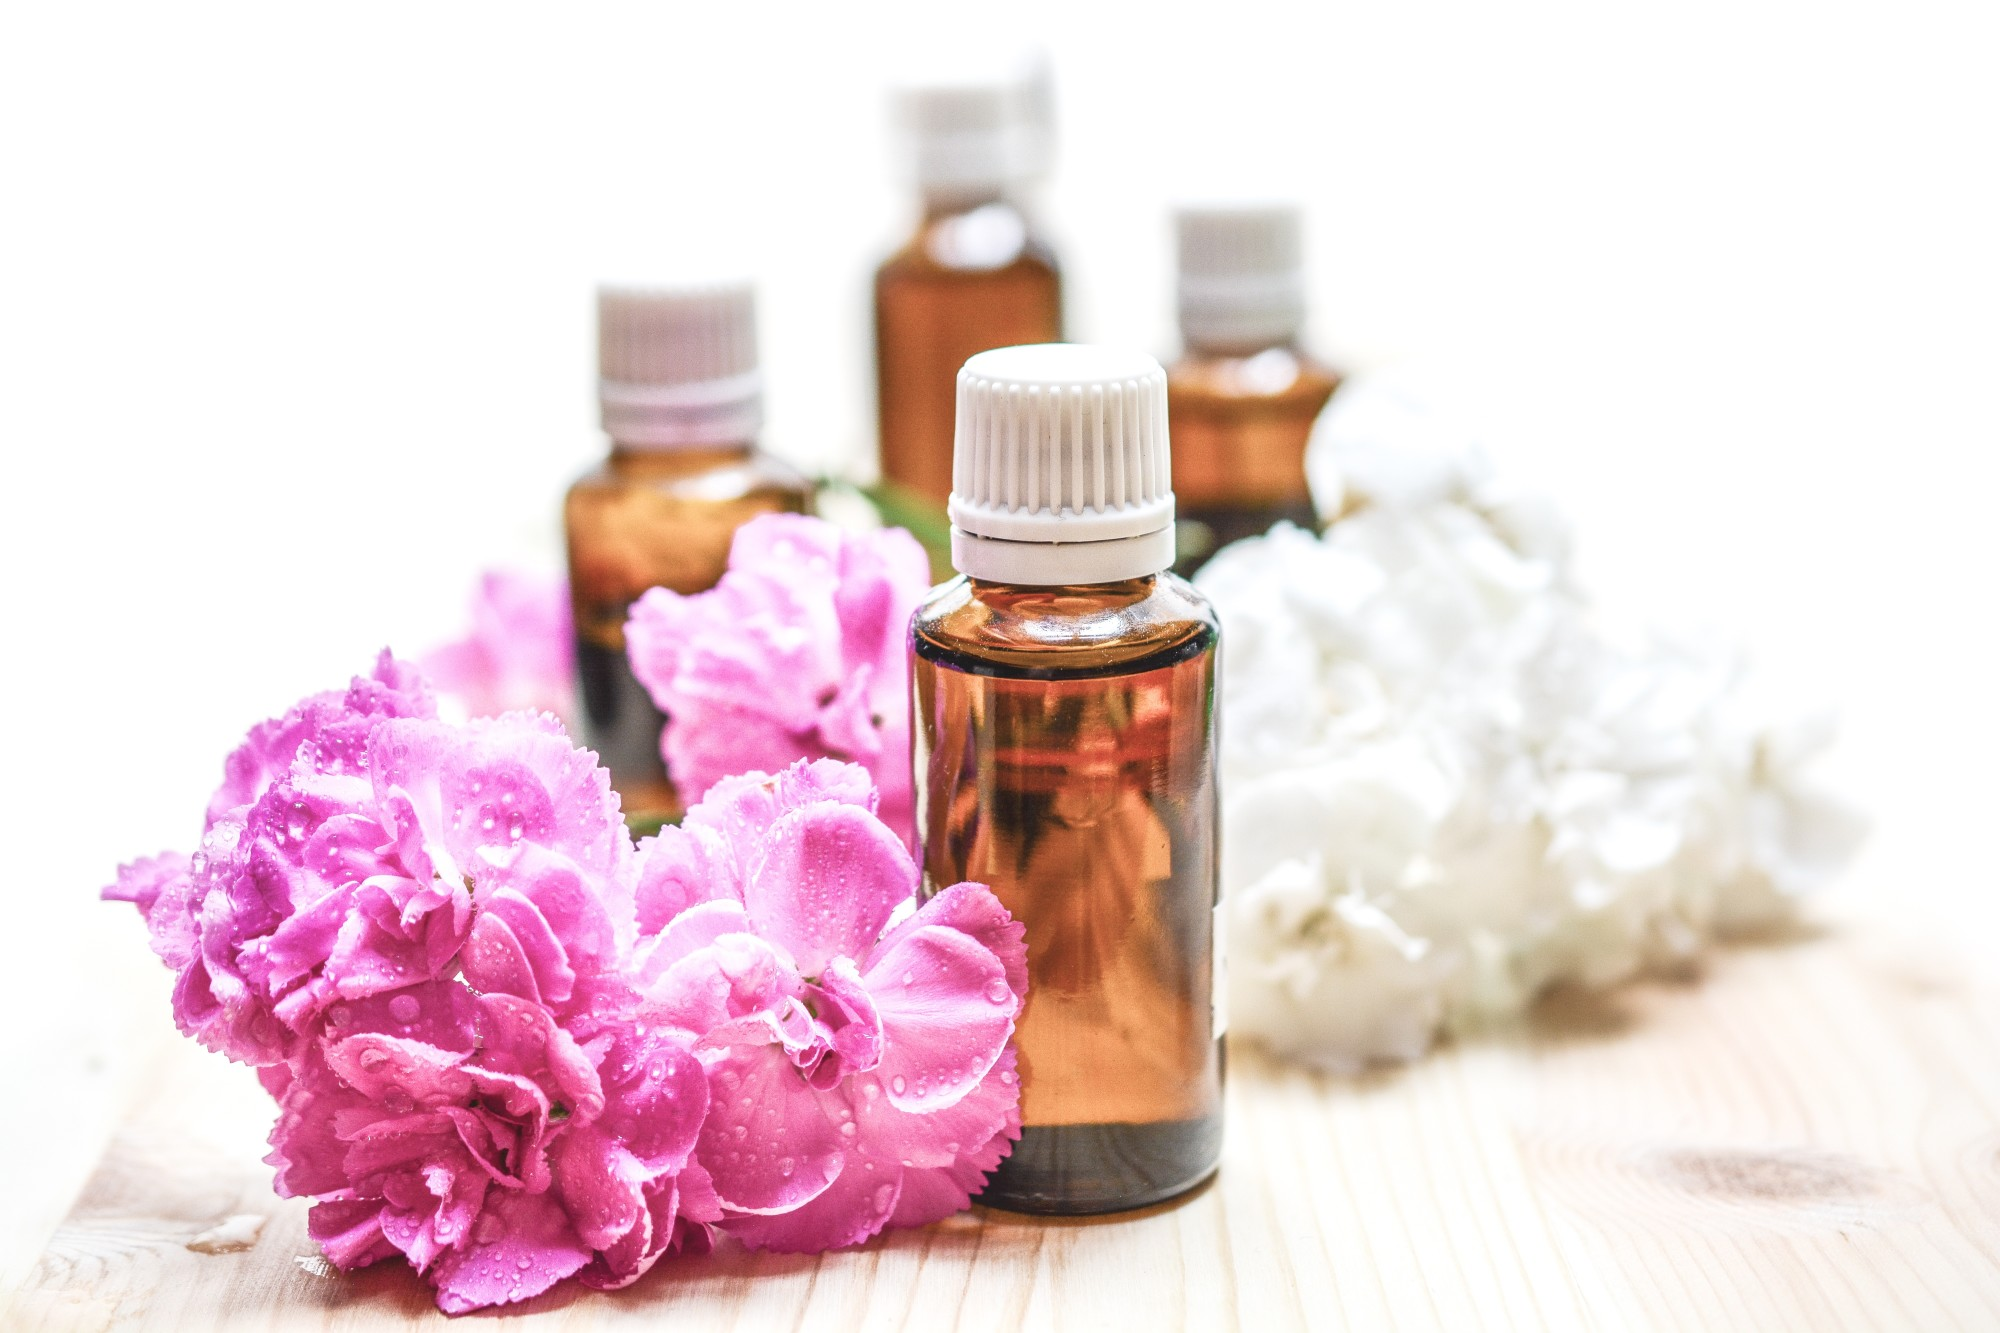 Therapeutic Essential Oils: 6 Popular Types and Their Benefits